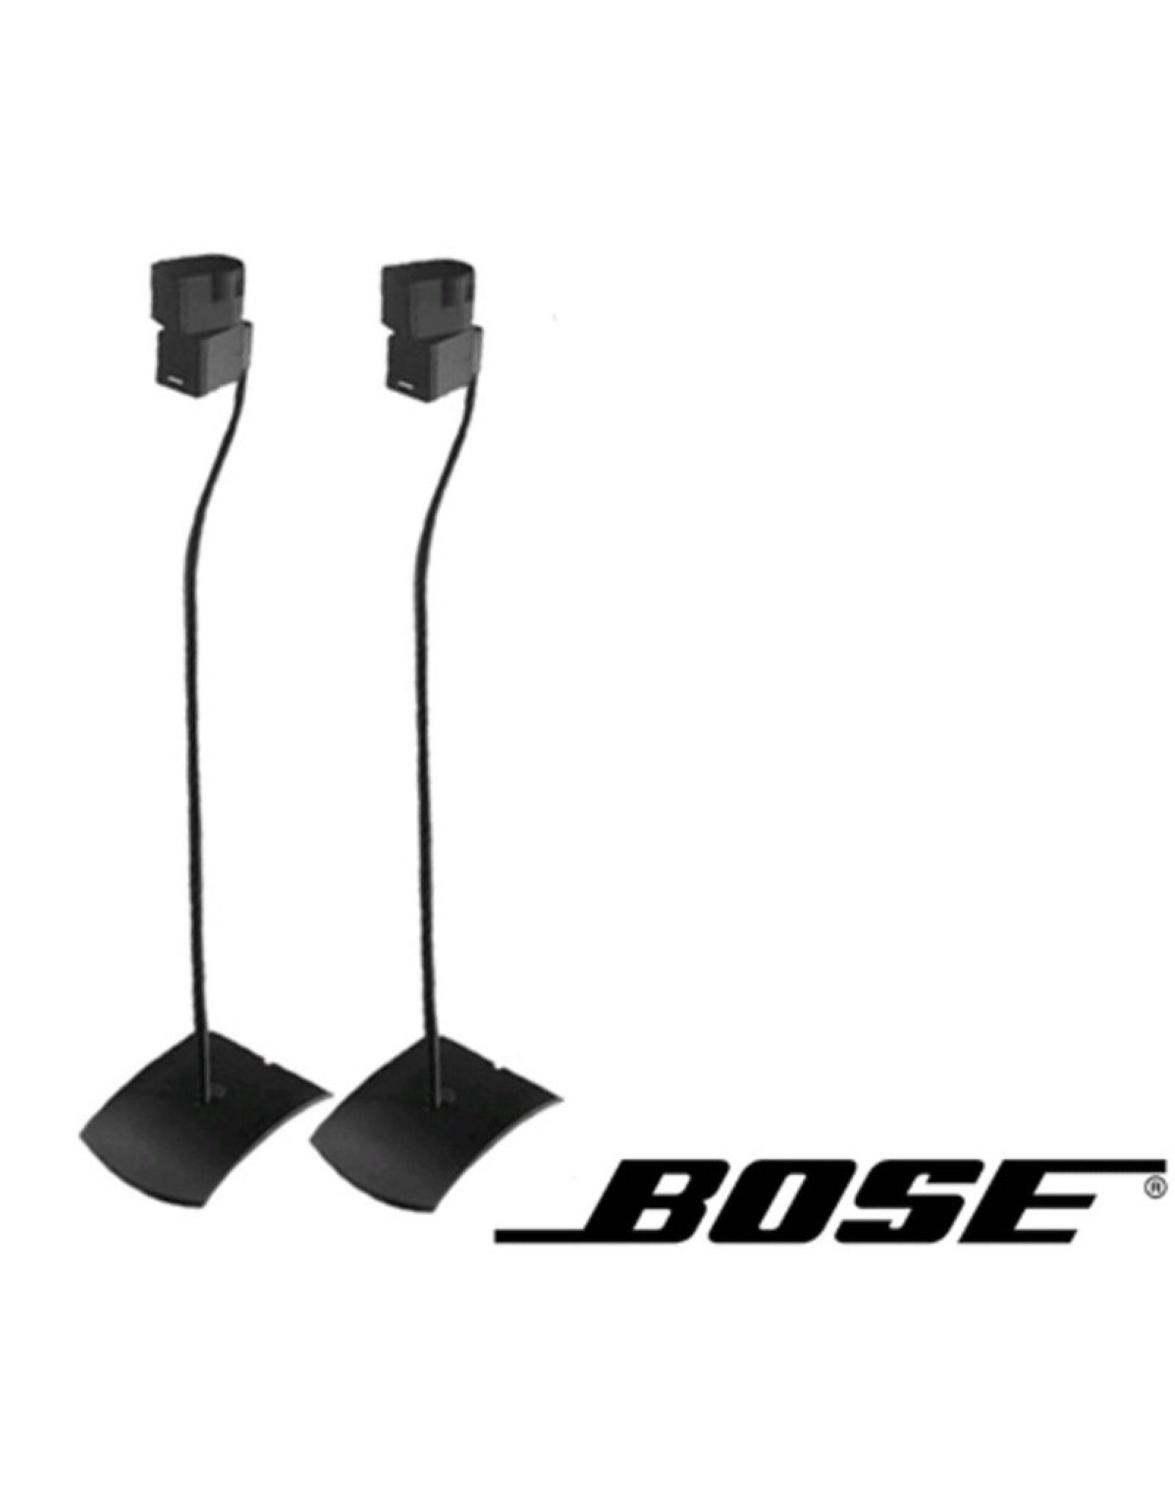 best bose ufs 20 universal speaker floor stands 2 pair black for sale in mcdonough georgia. Black Bedroom Furniture Sets. Home Design Ideas